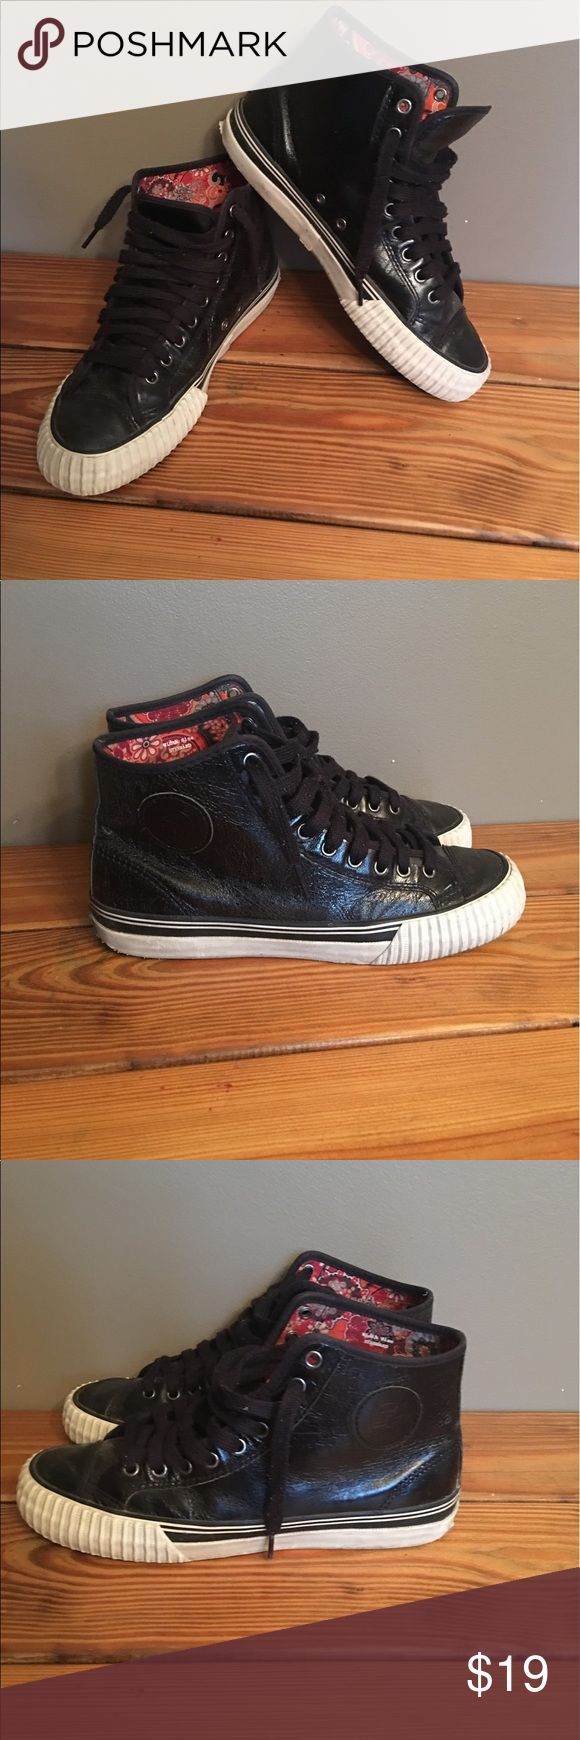 PF Flyers Black Leather Men's High Top Sneaker 9.5 PF Flyers Black Leather Men's High Top Sneaker 9.5. Excellent pre owned condition. Very cool paisley liner inside of shoe. Rare. PF Flyers Shoes Sneakers